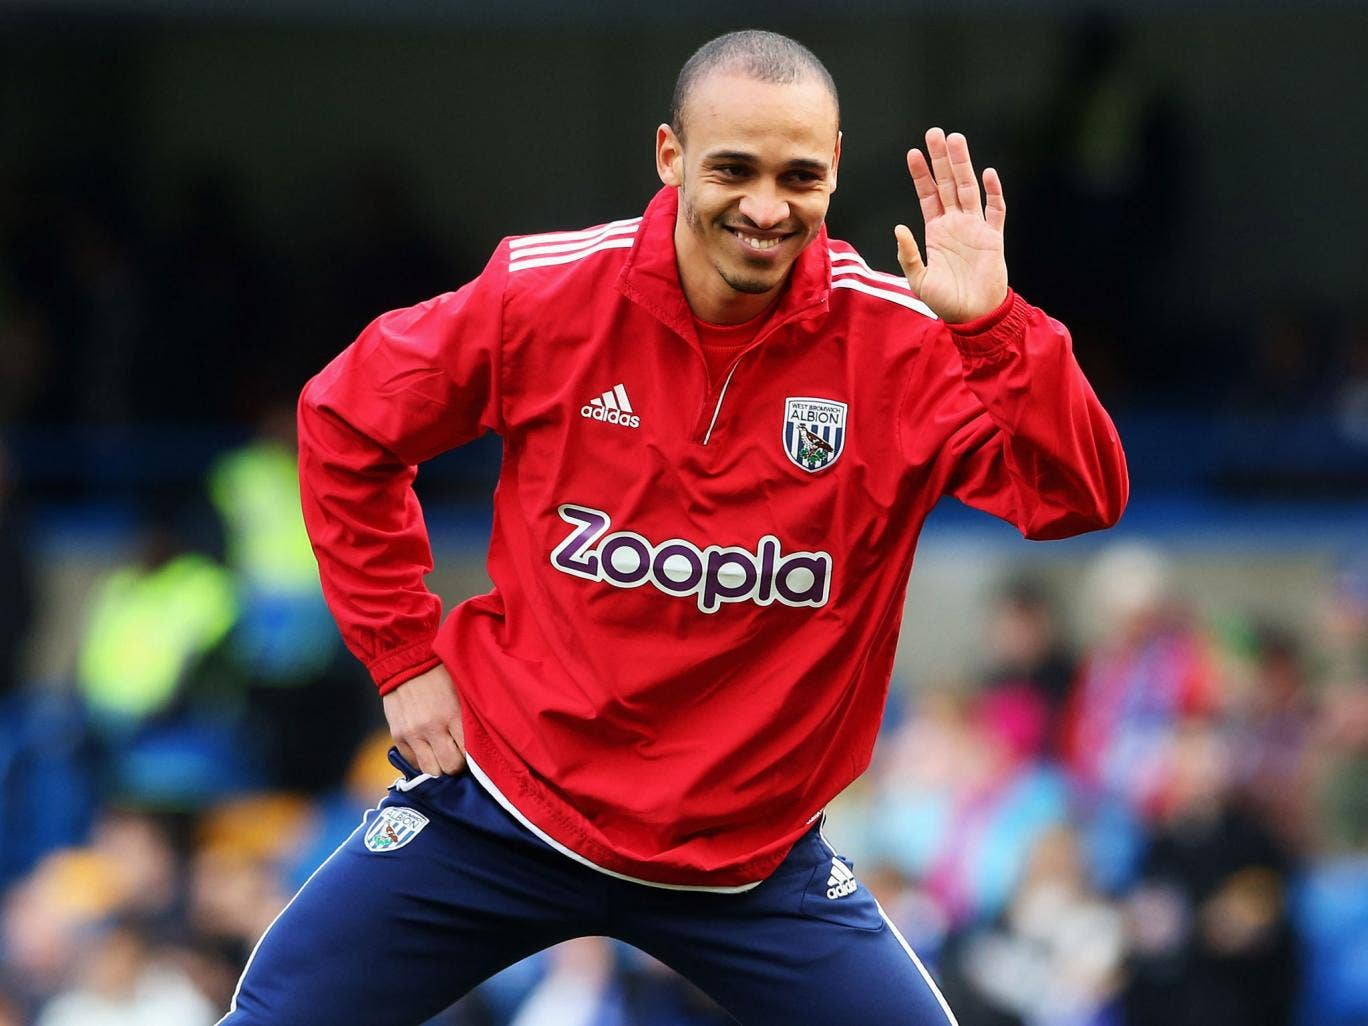 Peter Odemwingie of West Bromwich Albion waves as he warms up prior to the Barclays Premier League match between Chelsea and West Bromwich Albion